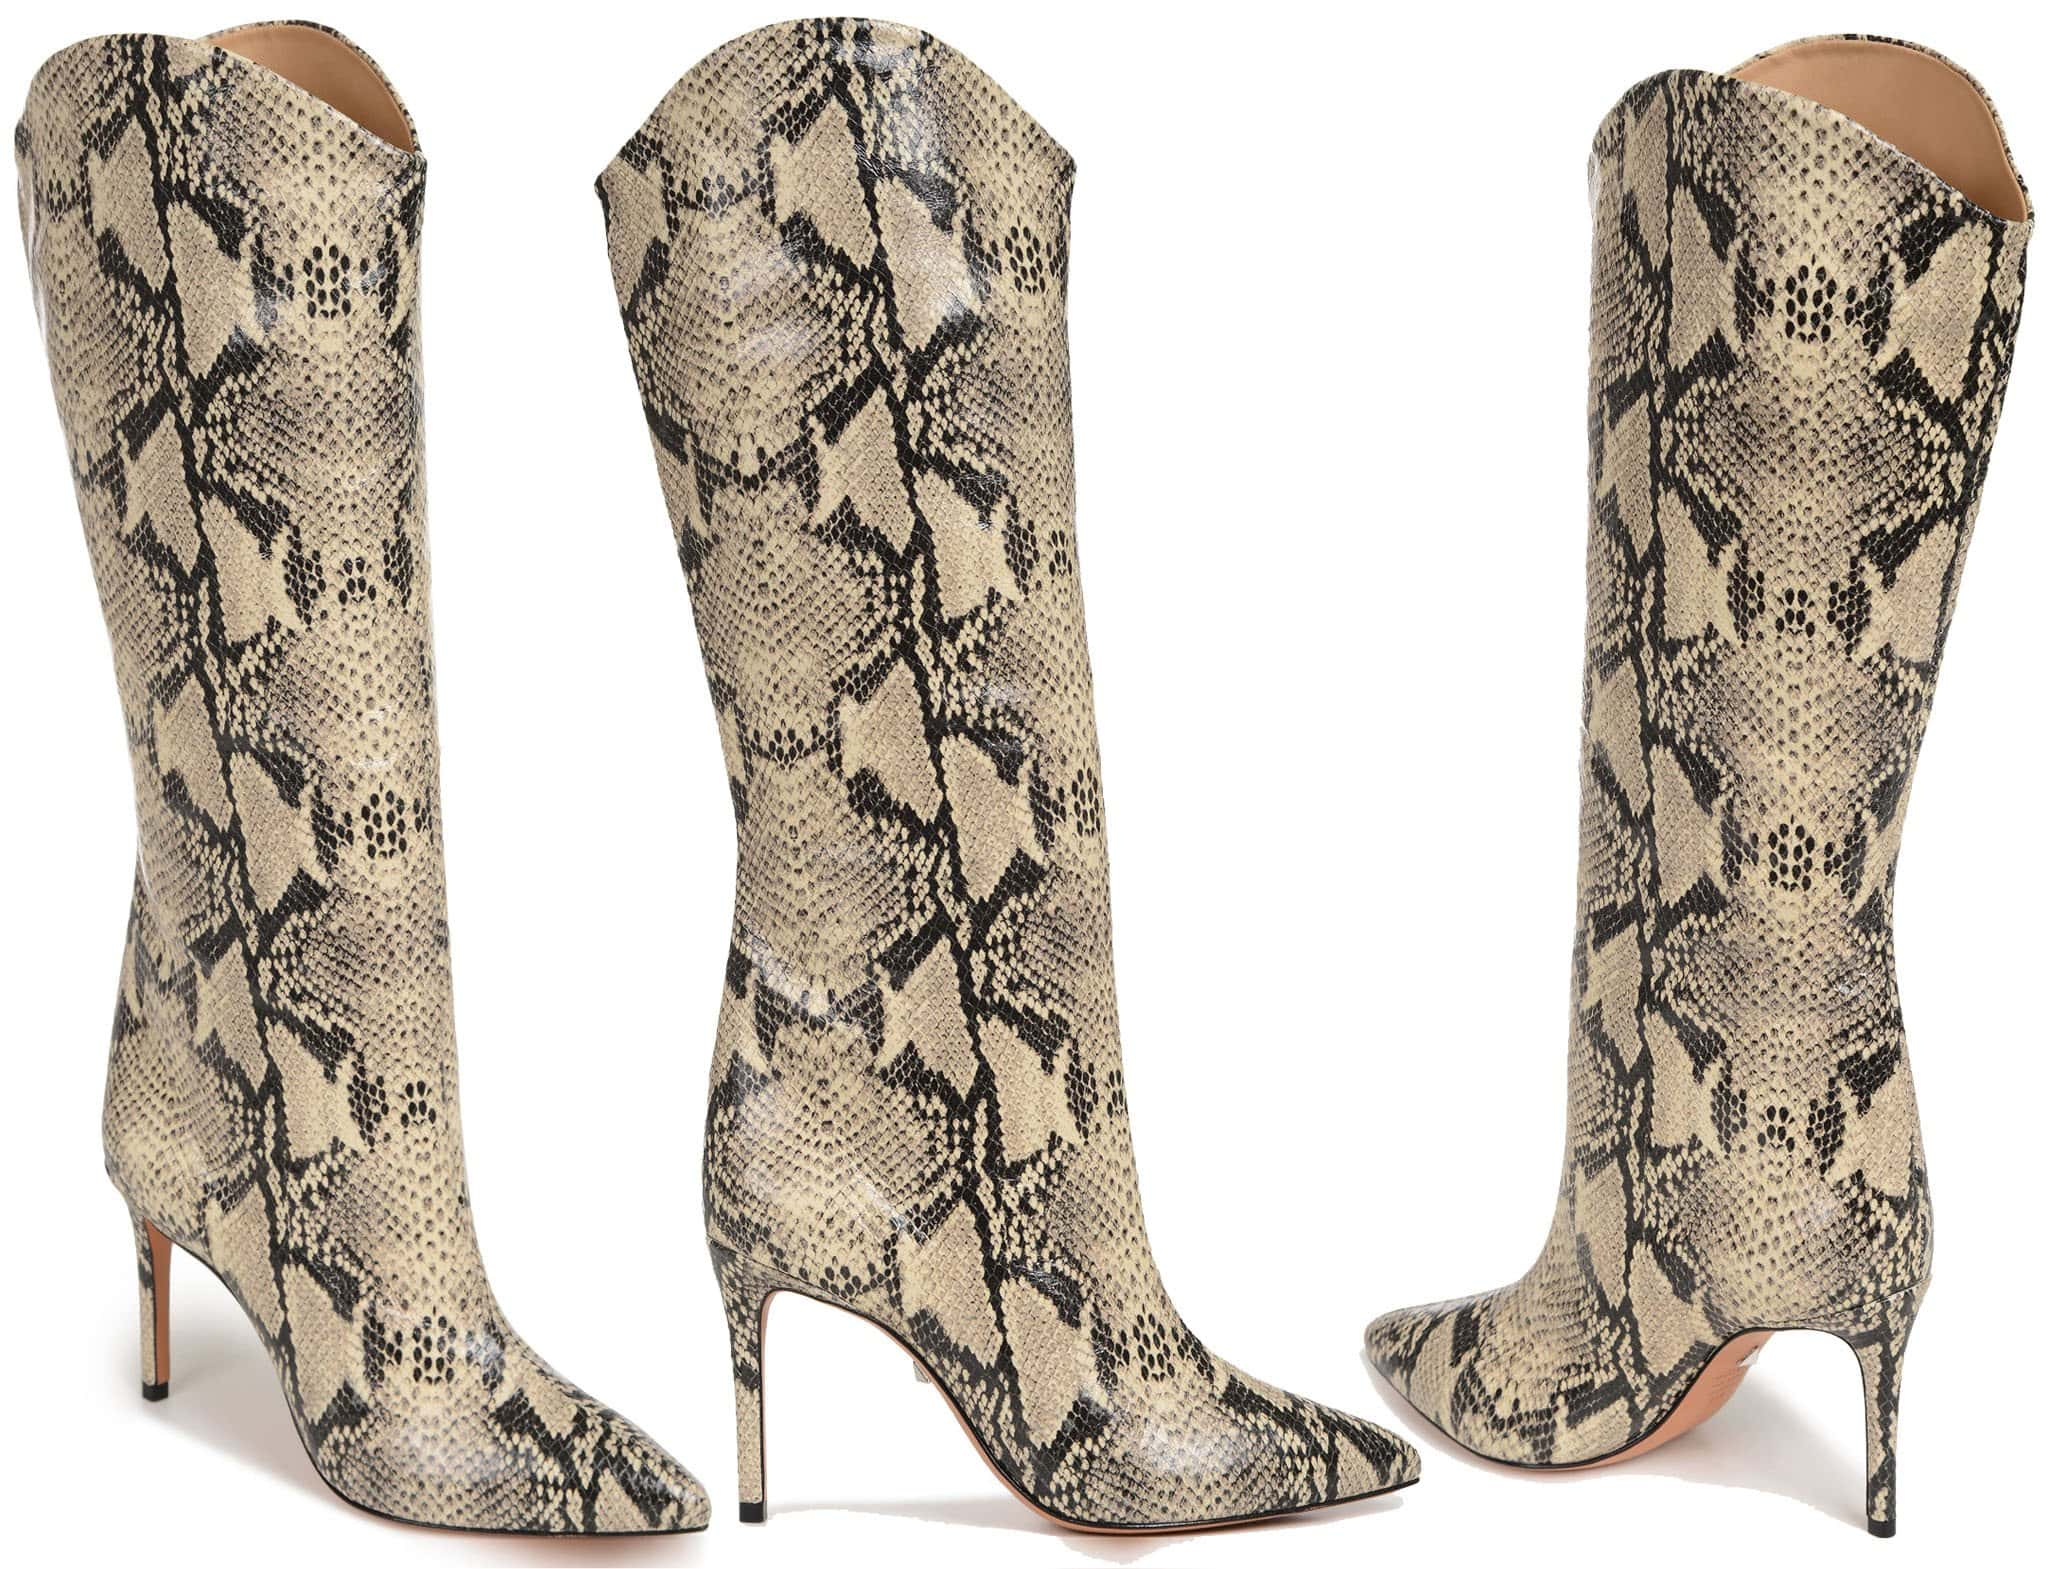 Snakeskin-embossed leather adds Southwestern style to a pointy-toe boot silhouette lifted by a slimmed-down heel